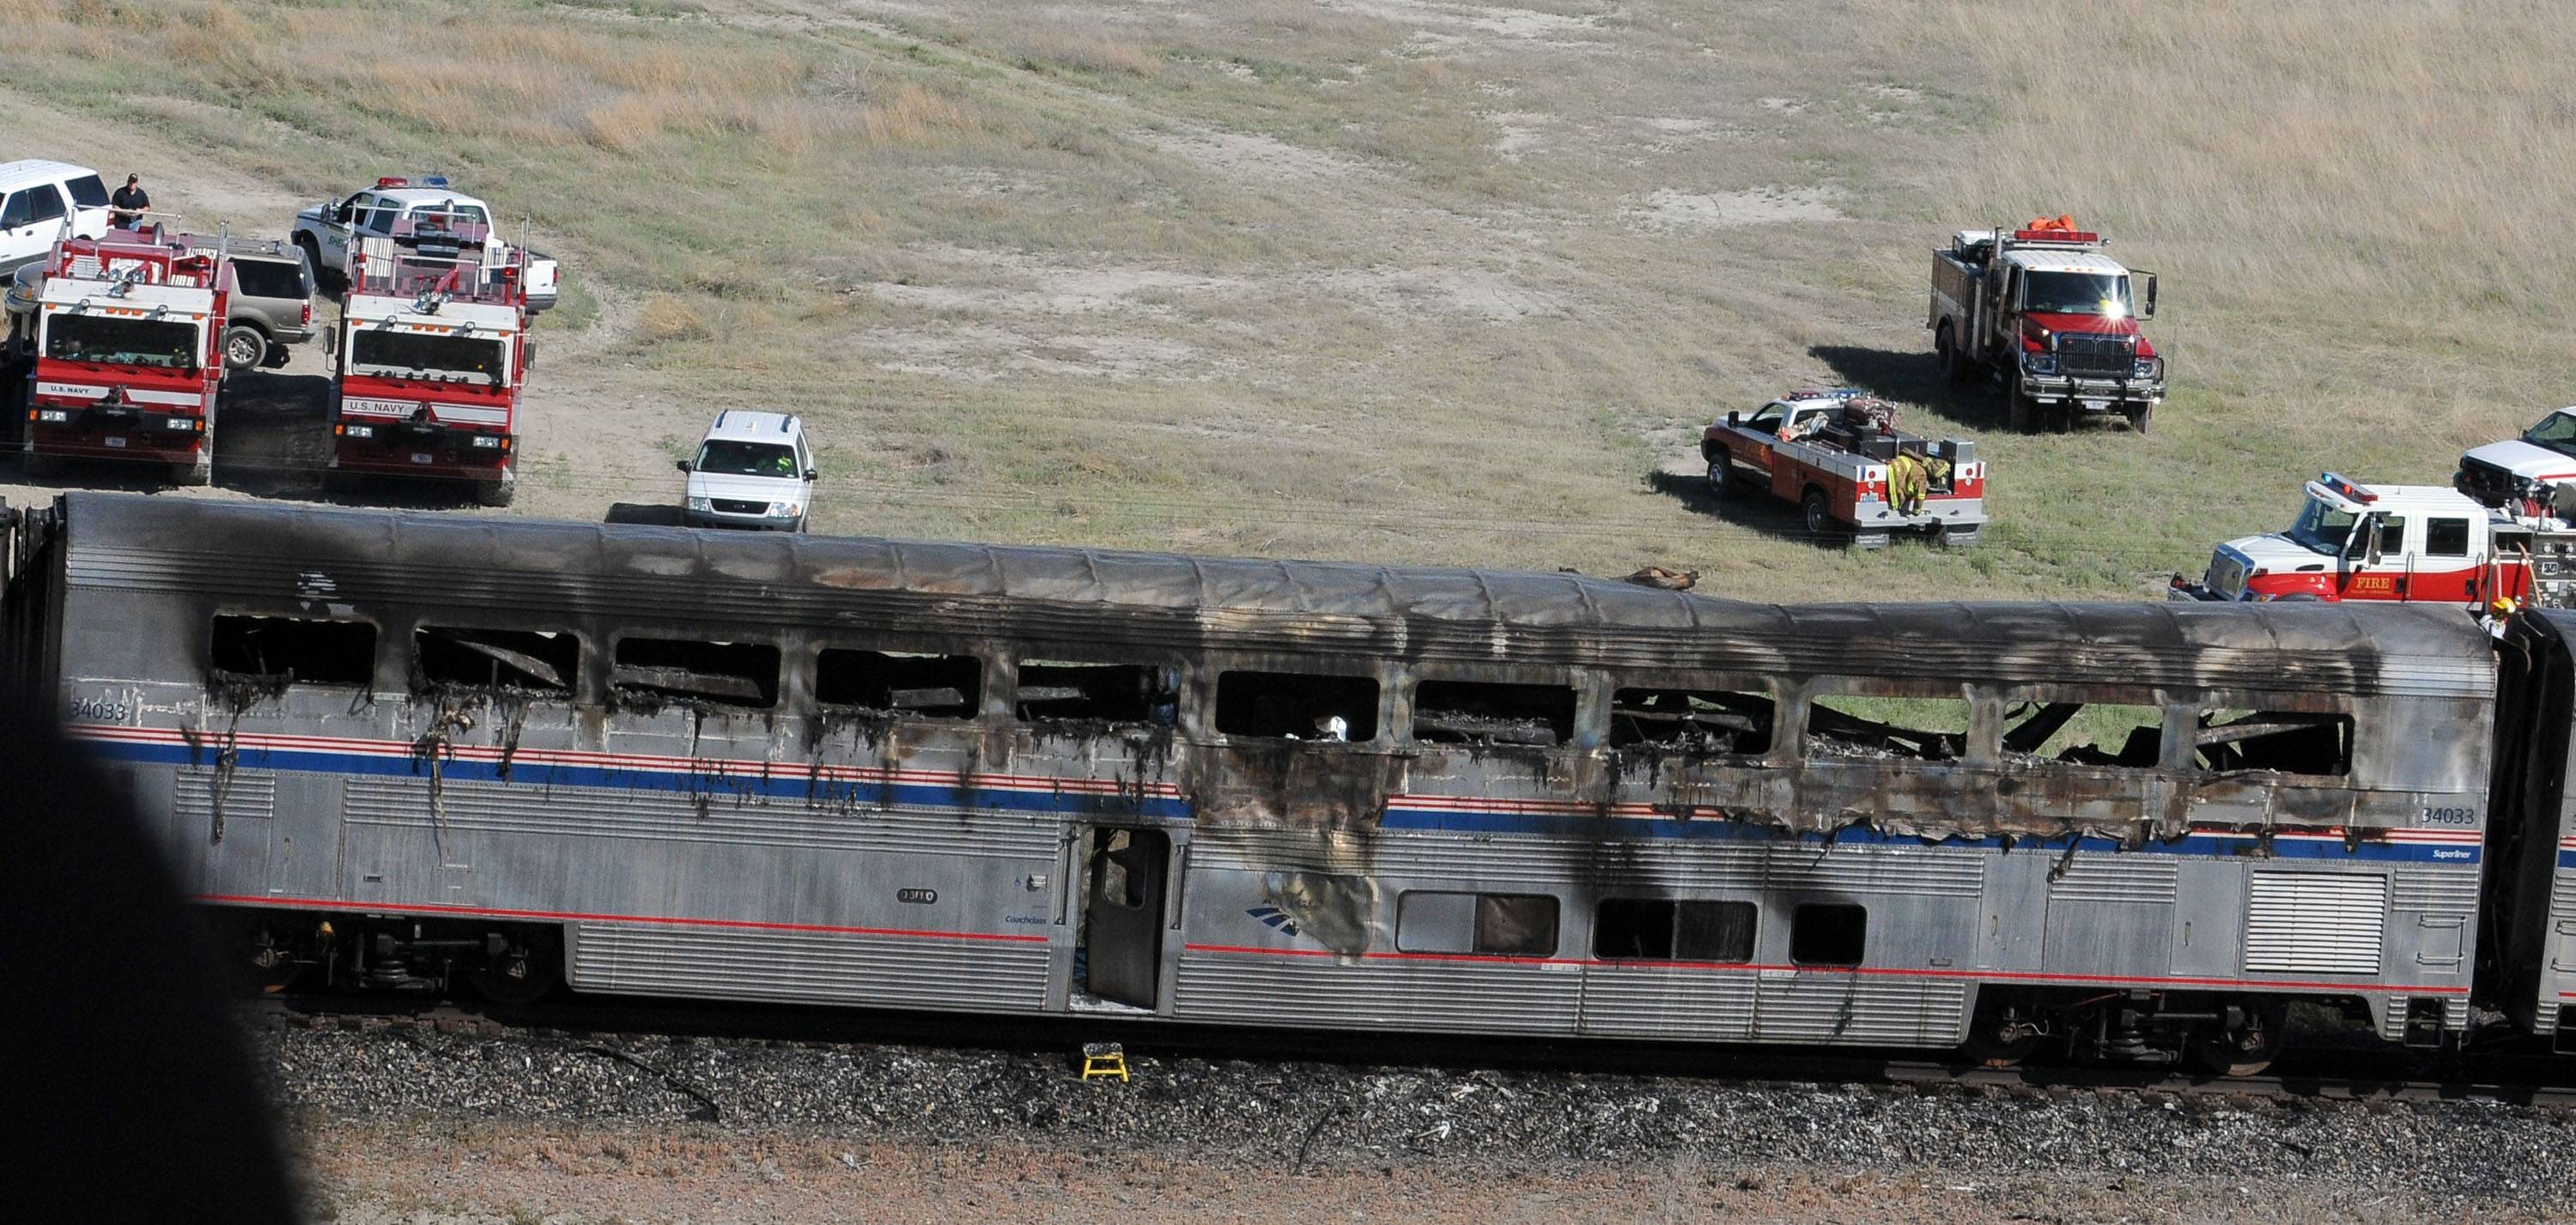 An Amtrak coach car is seen at the site of a collision between an Amtrak westbound train and a truck on U.S. 95 about 4 miles south of Interstate 80 on Friday, June 24, 2011, 70 miles east of Reno, Nev. The truck driver and one person on the train were killed said Nevada Highway Patrol Trooper Dan Lopez.